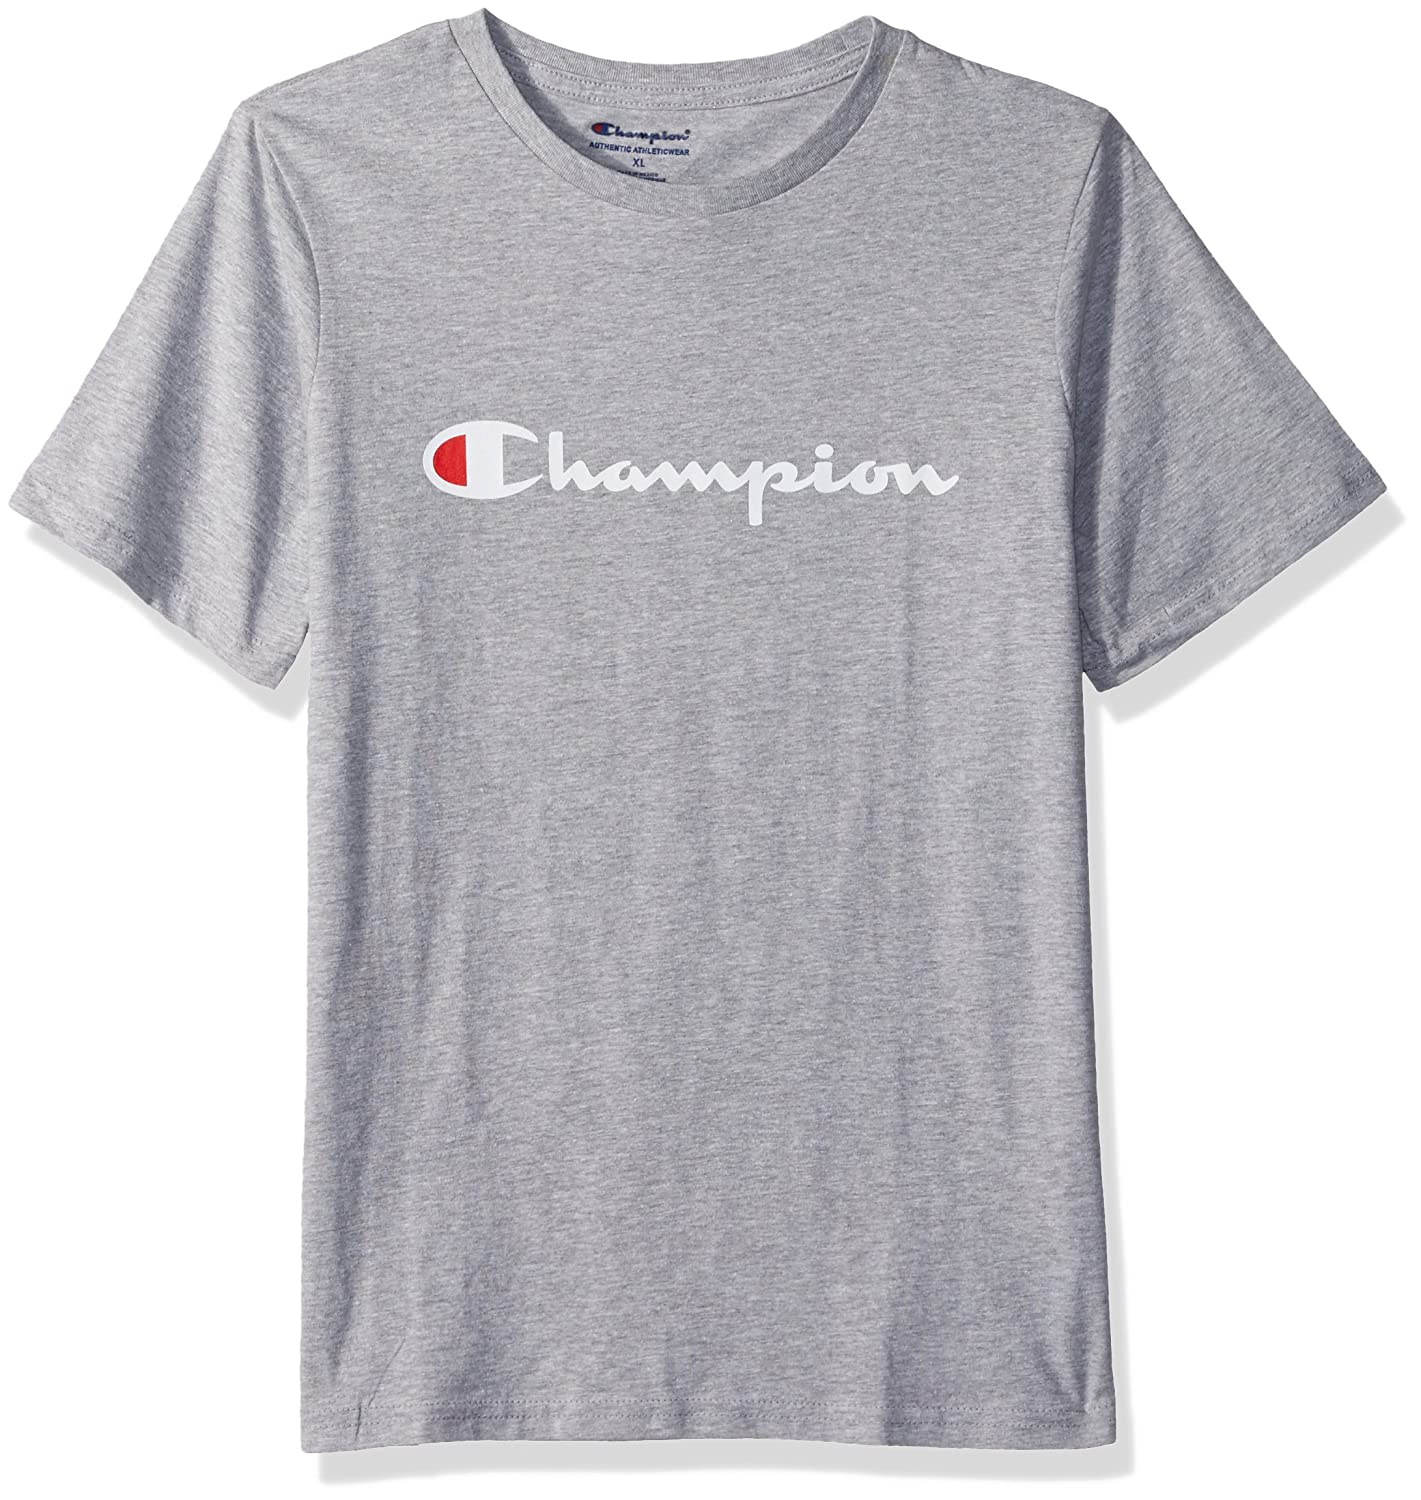 97e41cf03 Amazon.com: Champion Boys Short Sleeve Logo Tee Shirt: Clothing